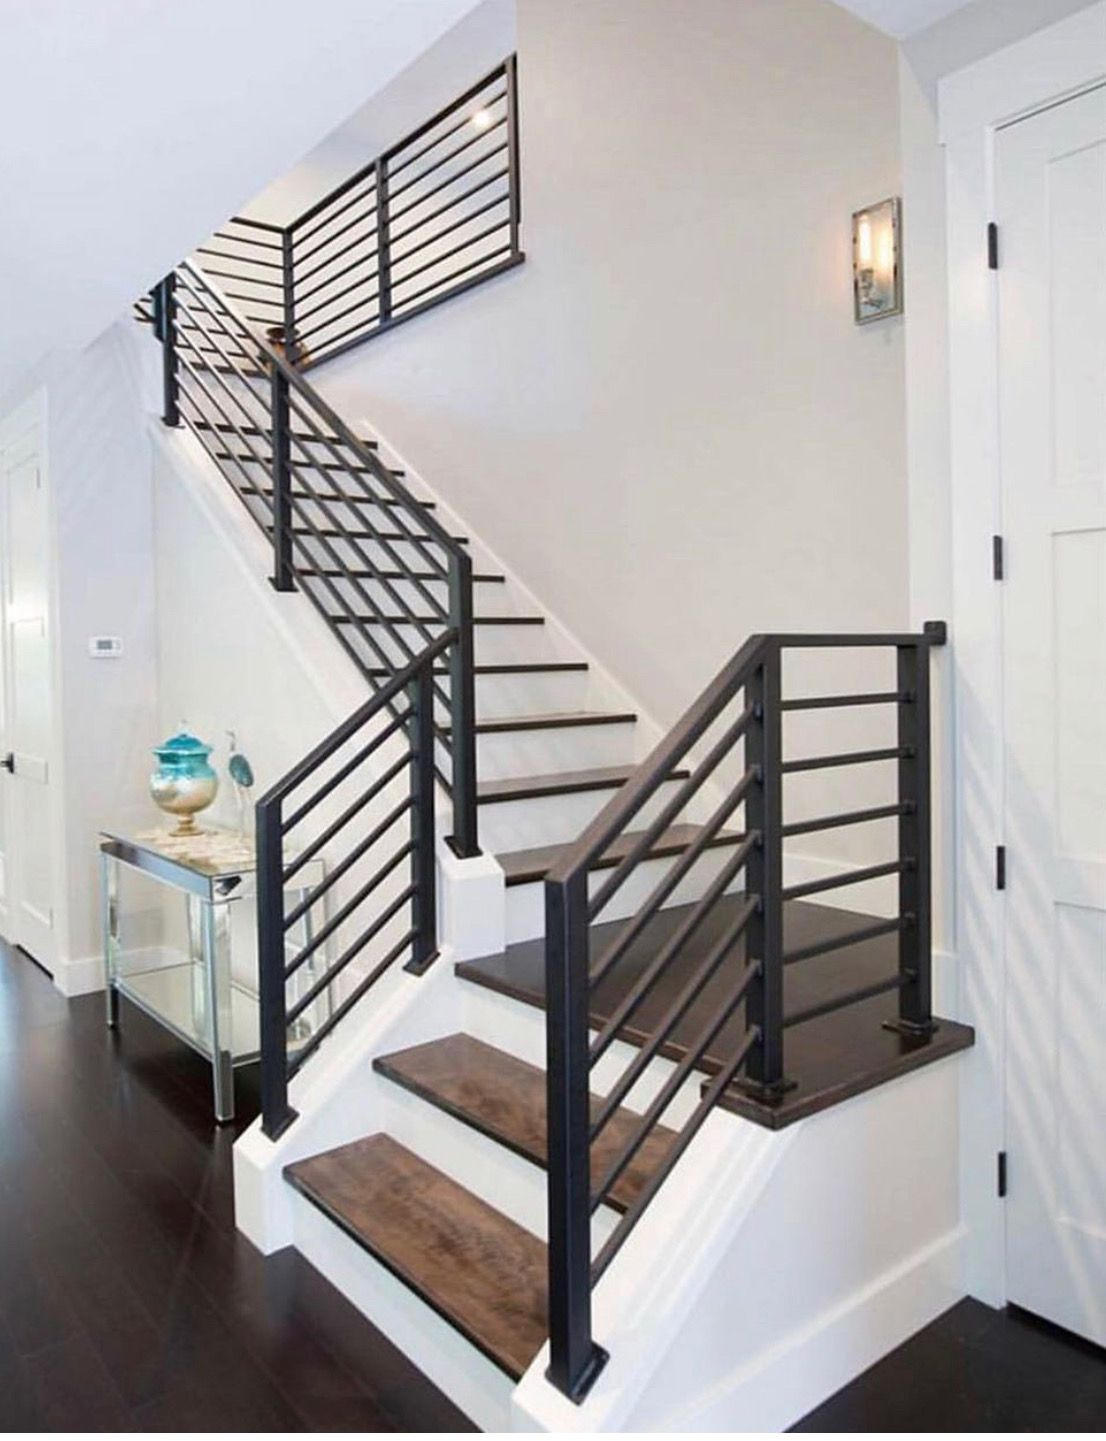 Love The Metal Railing Stairs Design Modern House Stairs   Modern Metal Stair Railing   Interesting   Horizontal Slat   Curved Metal   Low Cost   Before And After